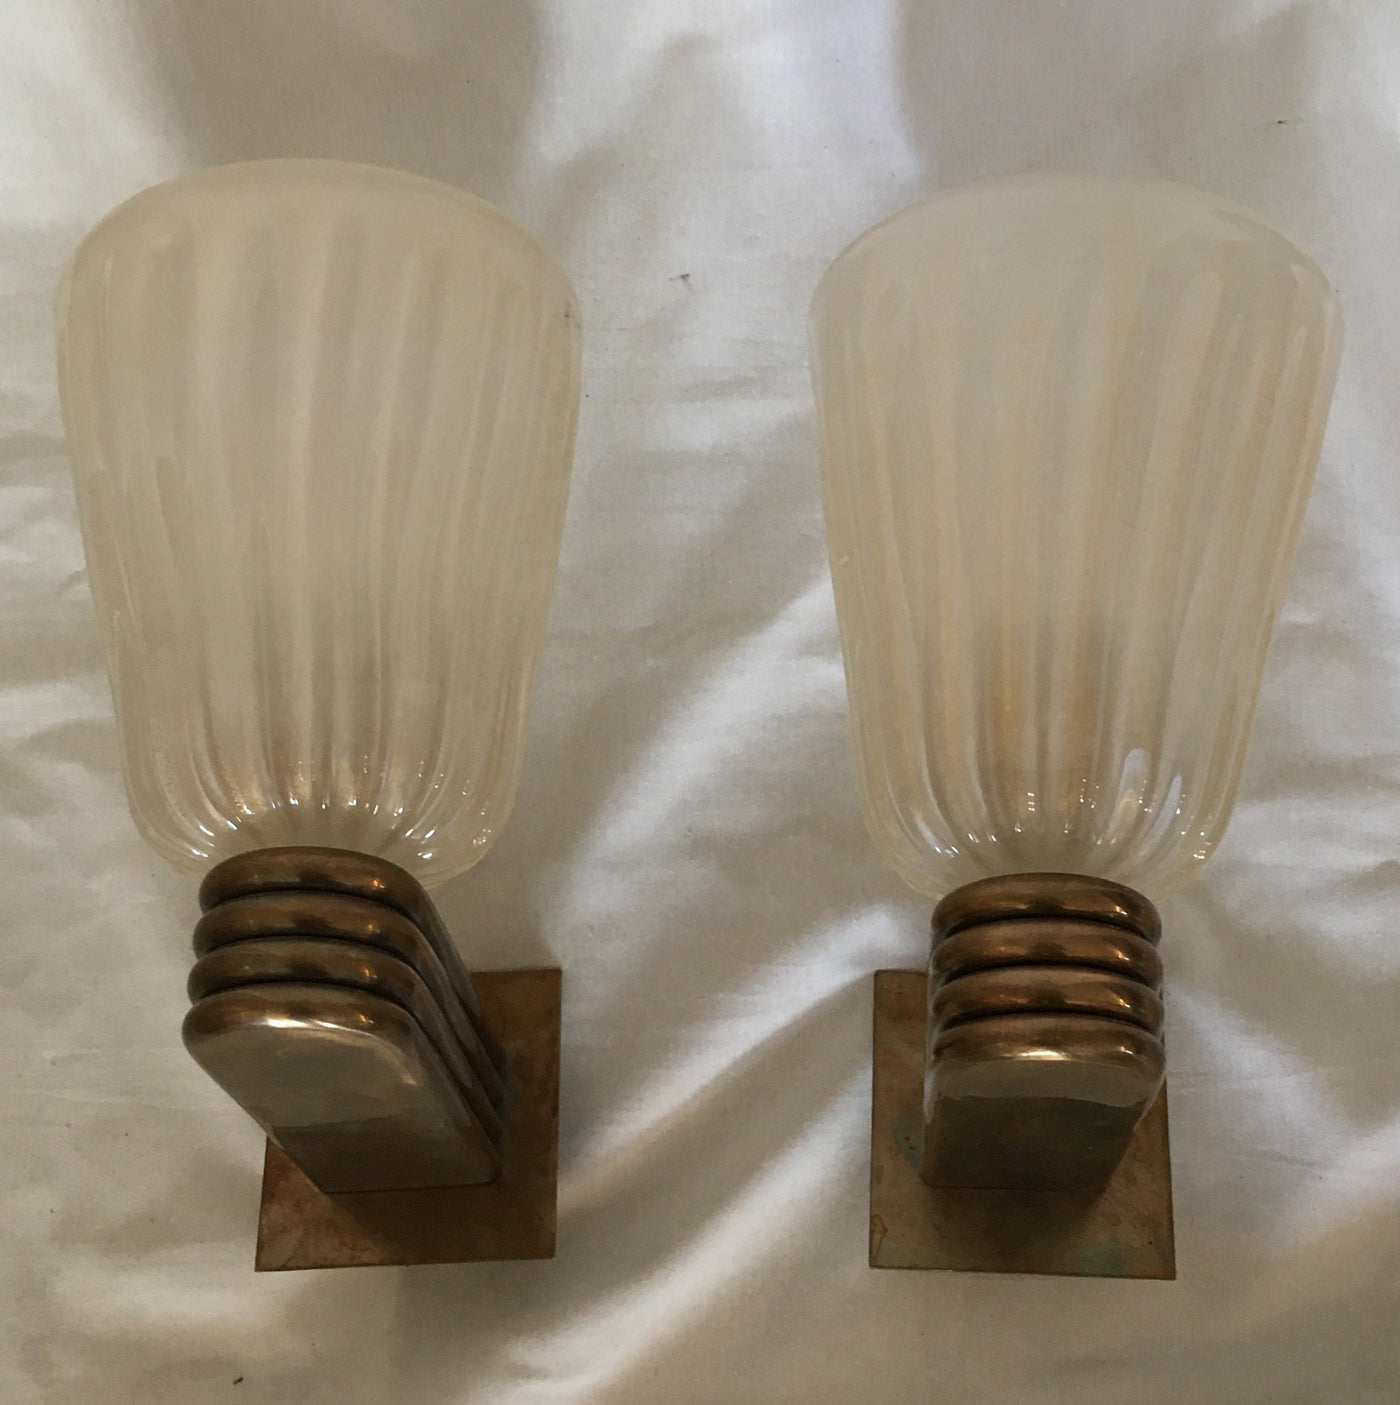 #6079-UIGG - Pair of Murano Sconces (Only 1 Pair)